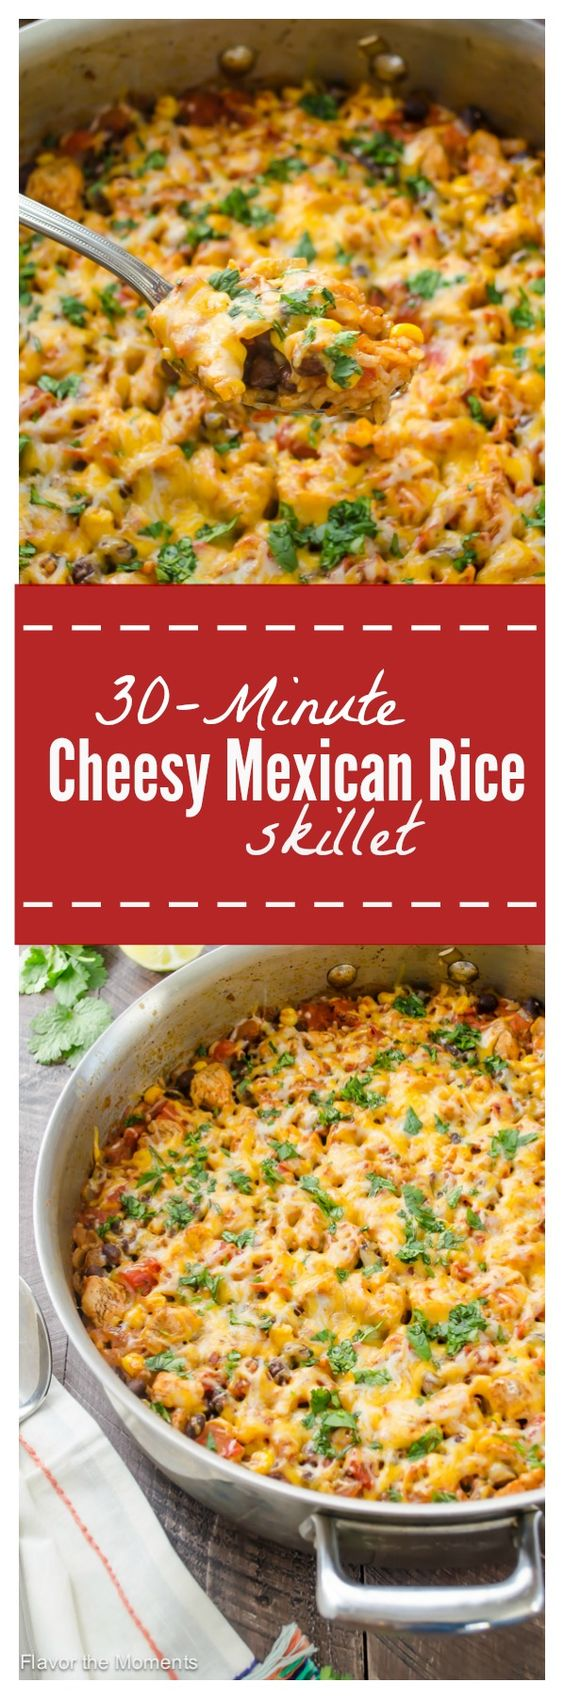 30-Minute Cheesy Mexican Rice Skillet is an easy one pot meal packed with chicken, rice, and plenty of Mexican spice! It's all topped with cheese for one delicious weeknight meal! @FlavortheMoment